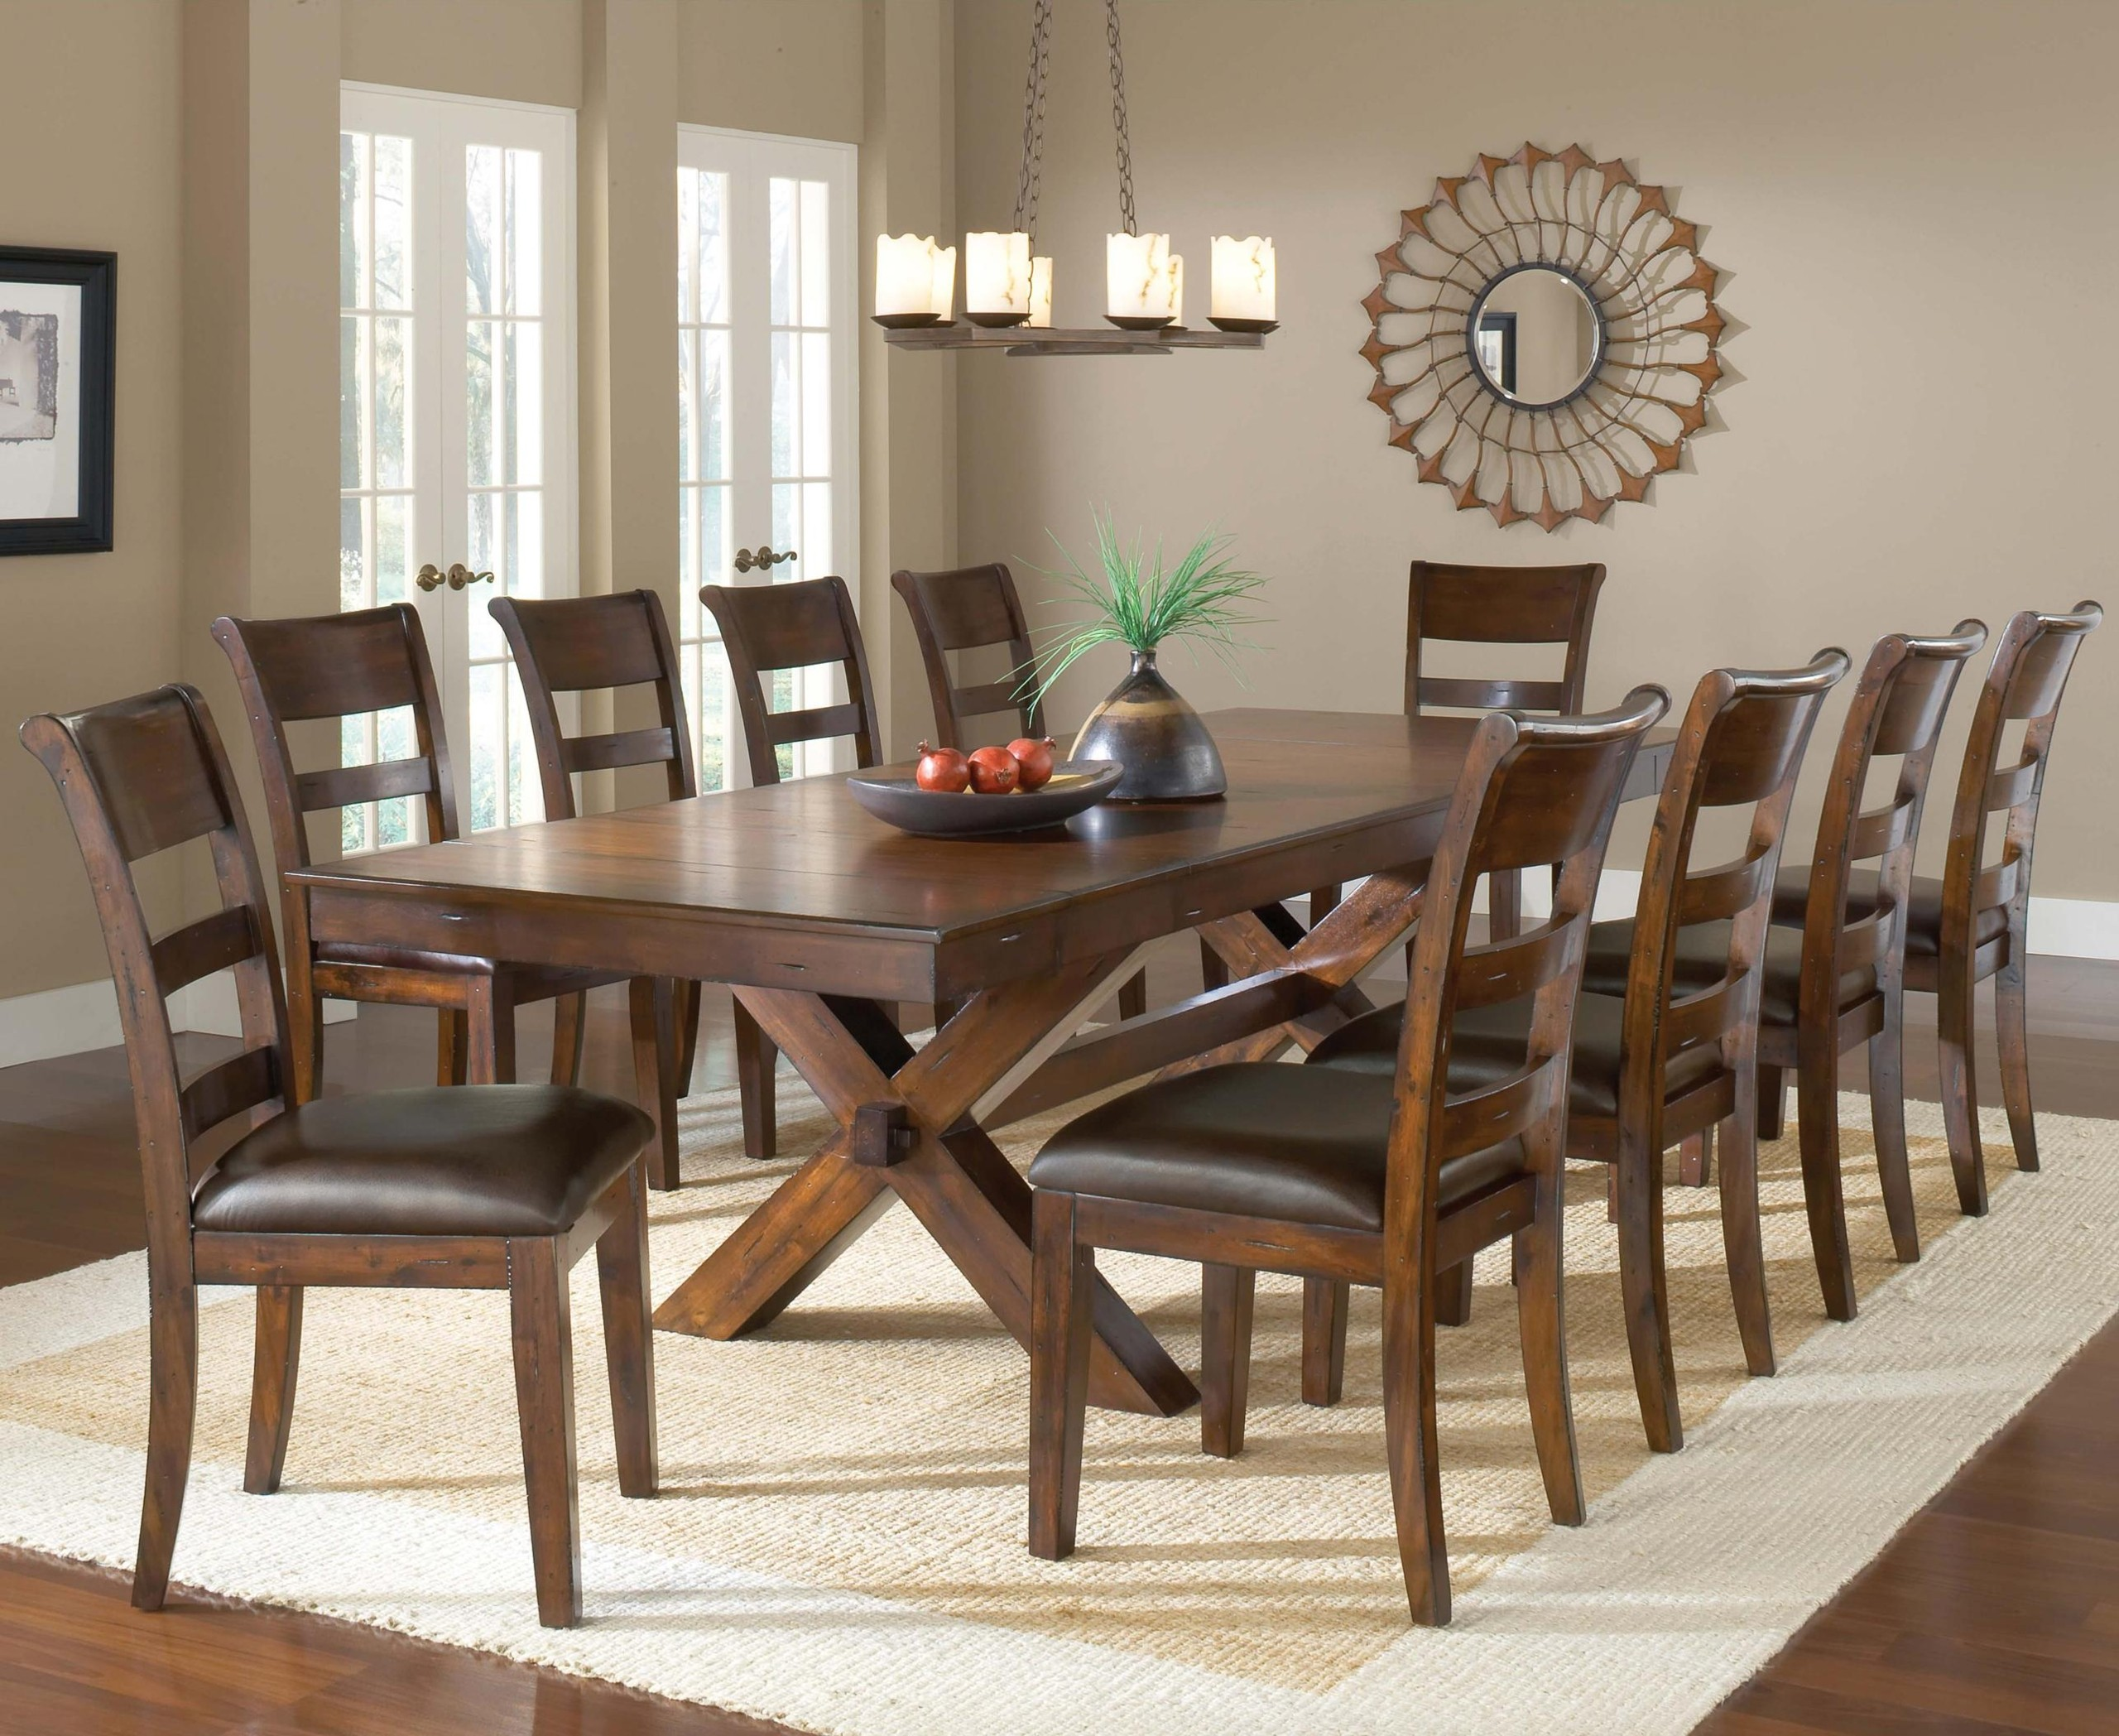 Merveilleux 10 Seater Oval Dining Table